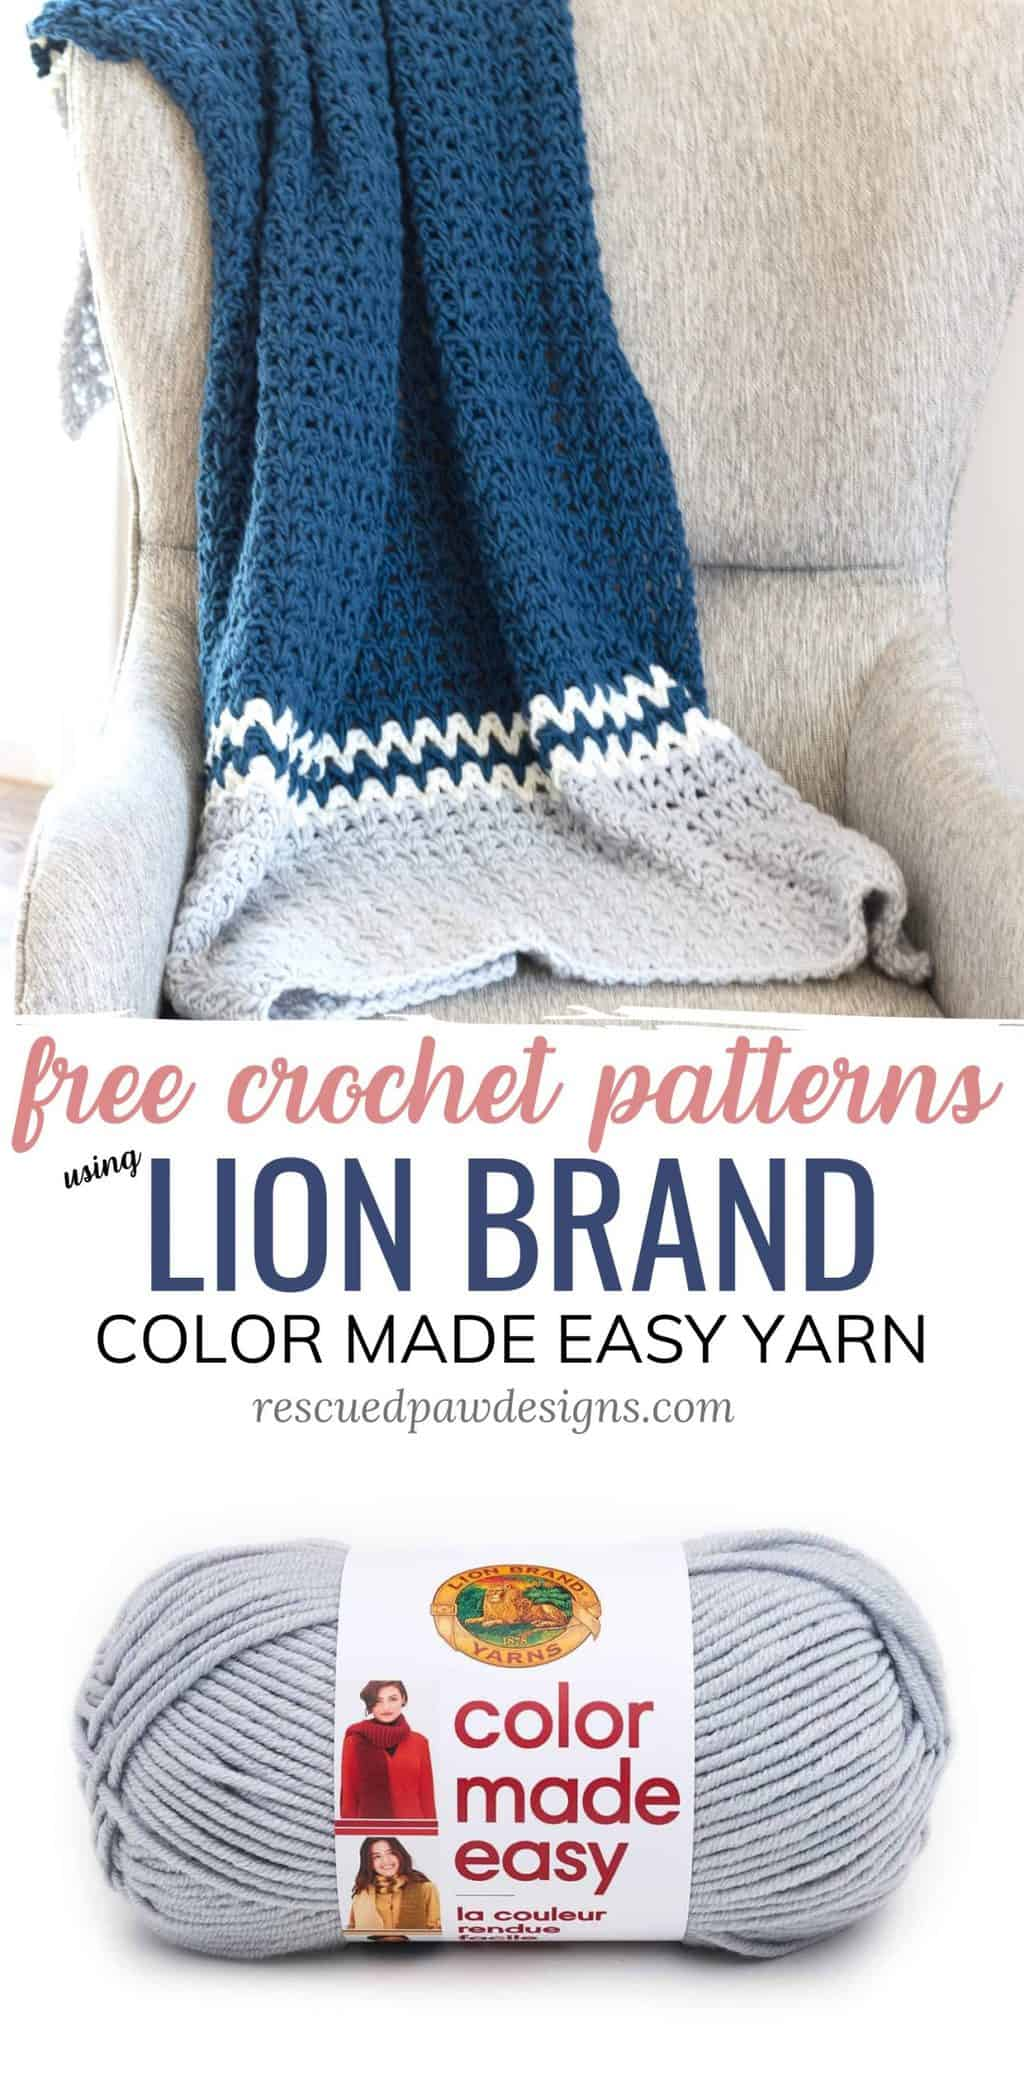 Color Made Easy Yarn Patterns to Crochet from Lion Brand